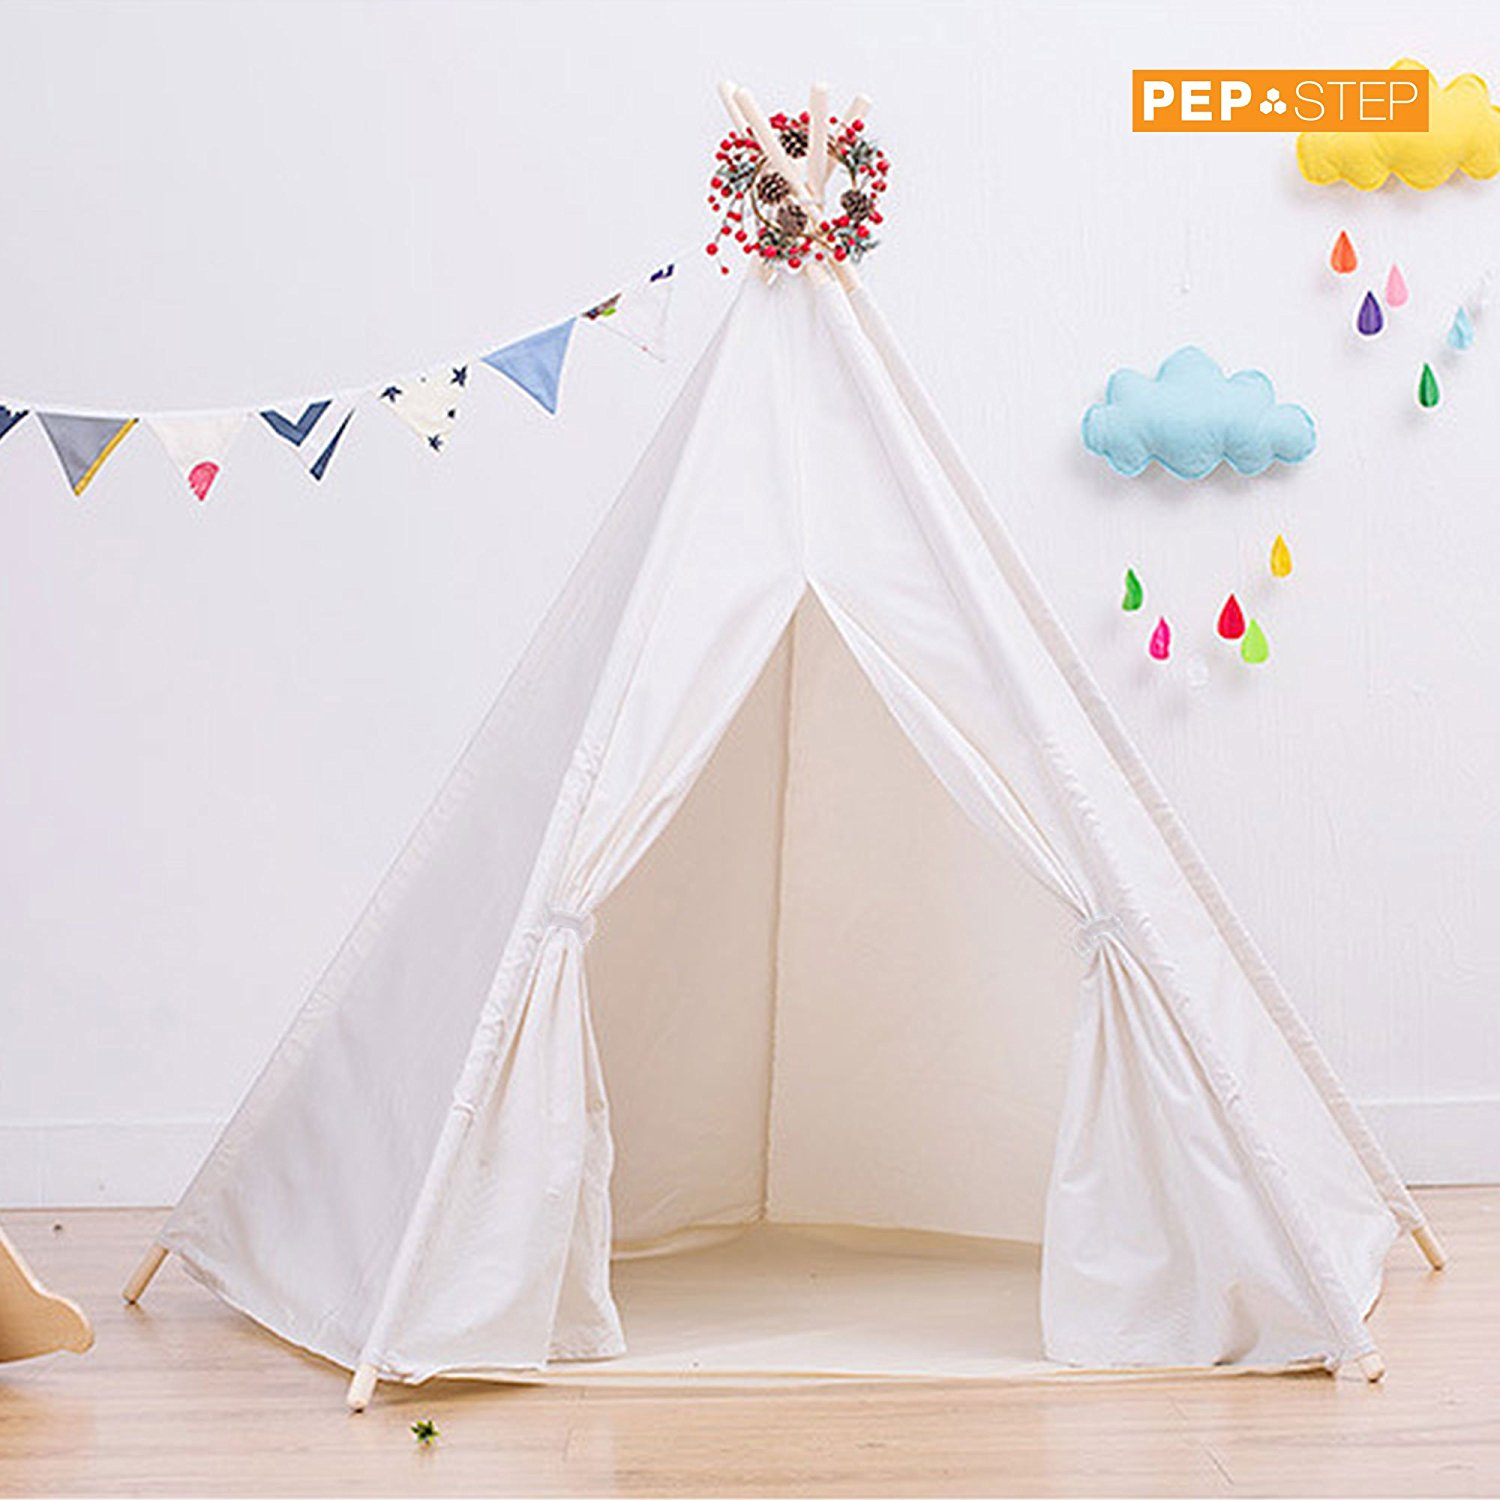 PEP STEP TIPI TENT Cotton Canvas TeePee Tent Fordable 6